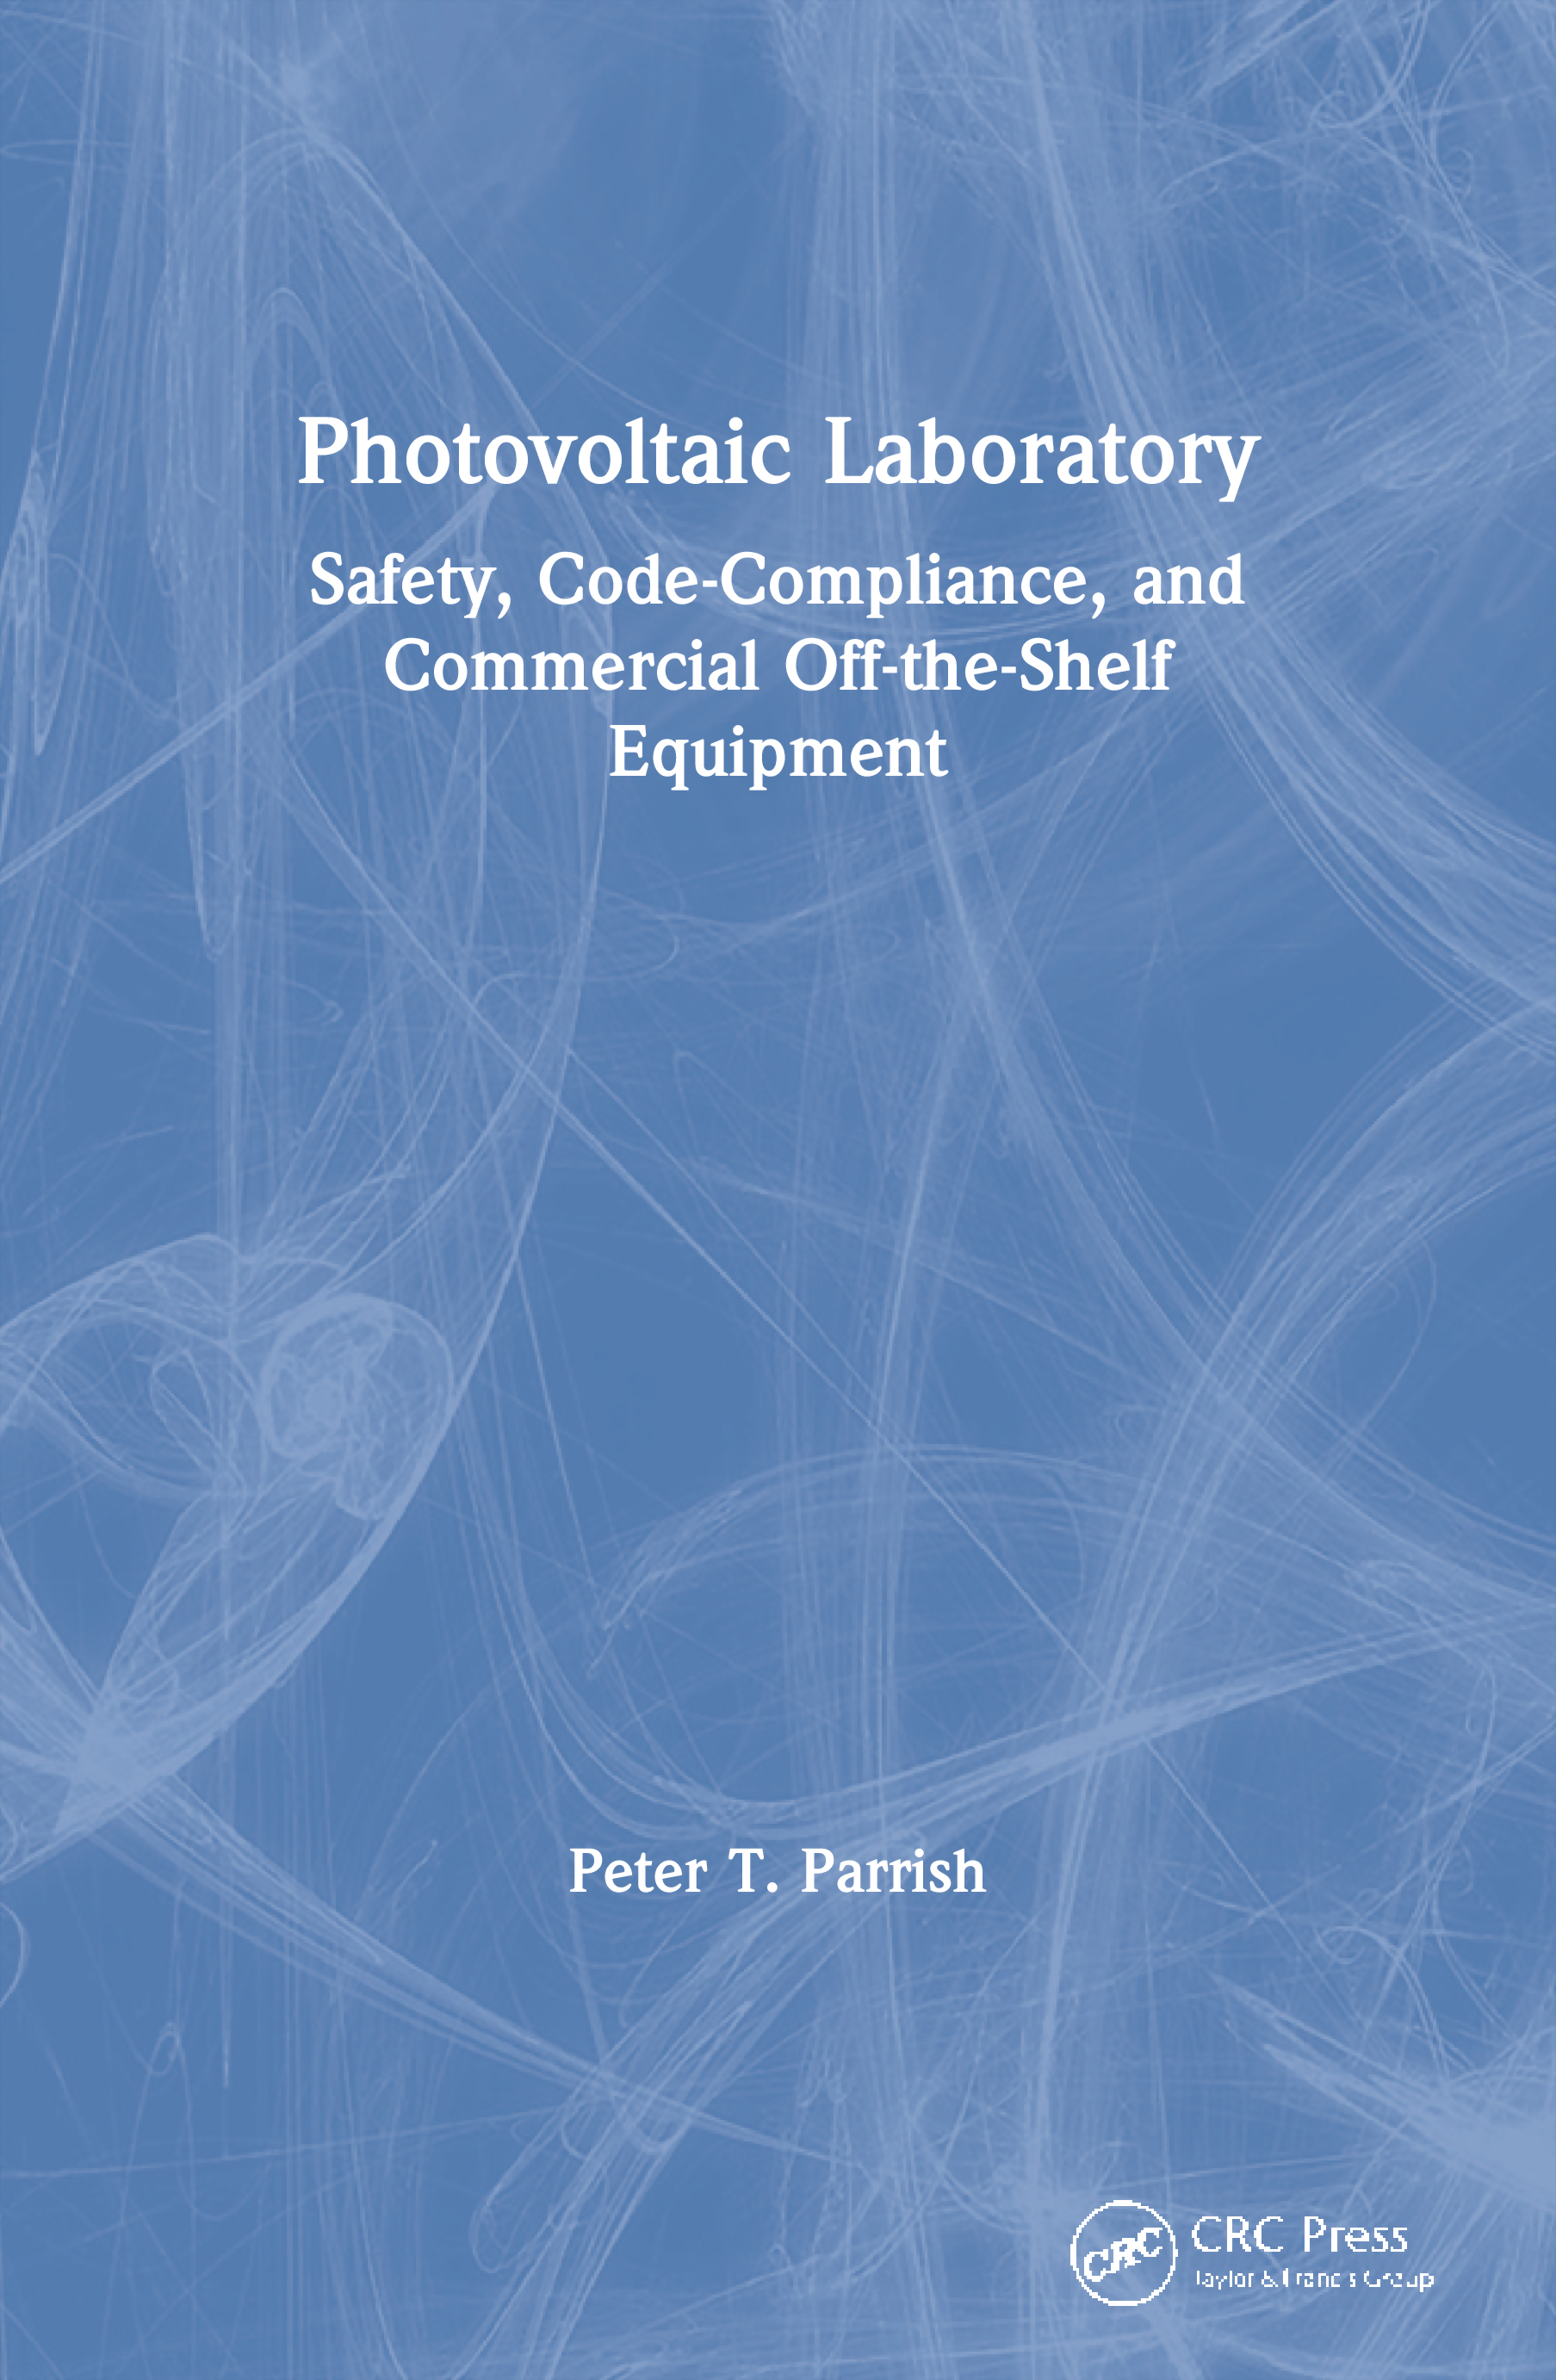 Photovoltaic Laboratory: Safety, Code-Compliance, and Commercial Off-the-Shelf Equipment, 1st Edition (Paperback) book cover